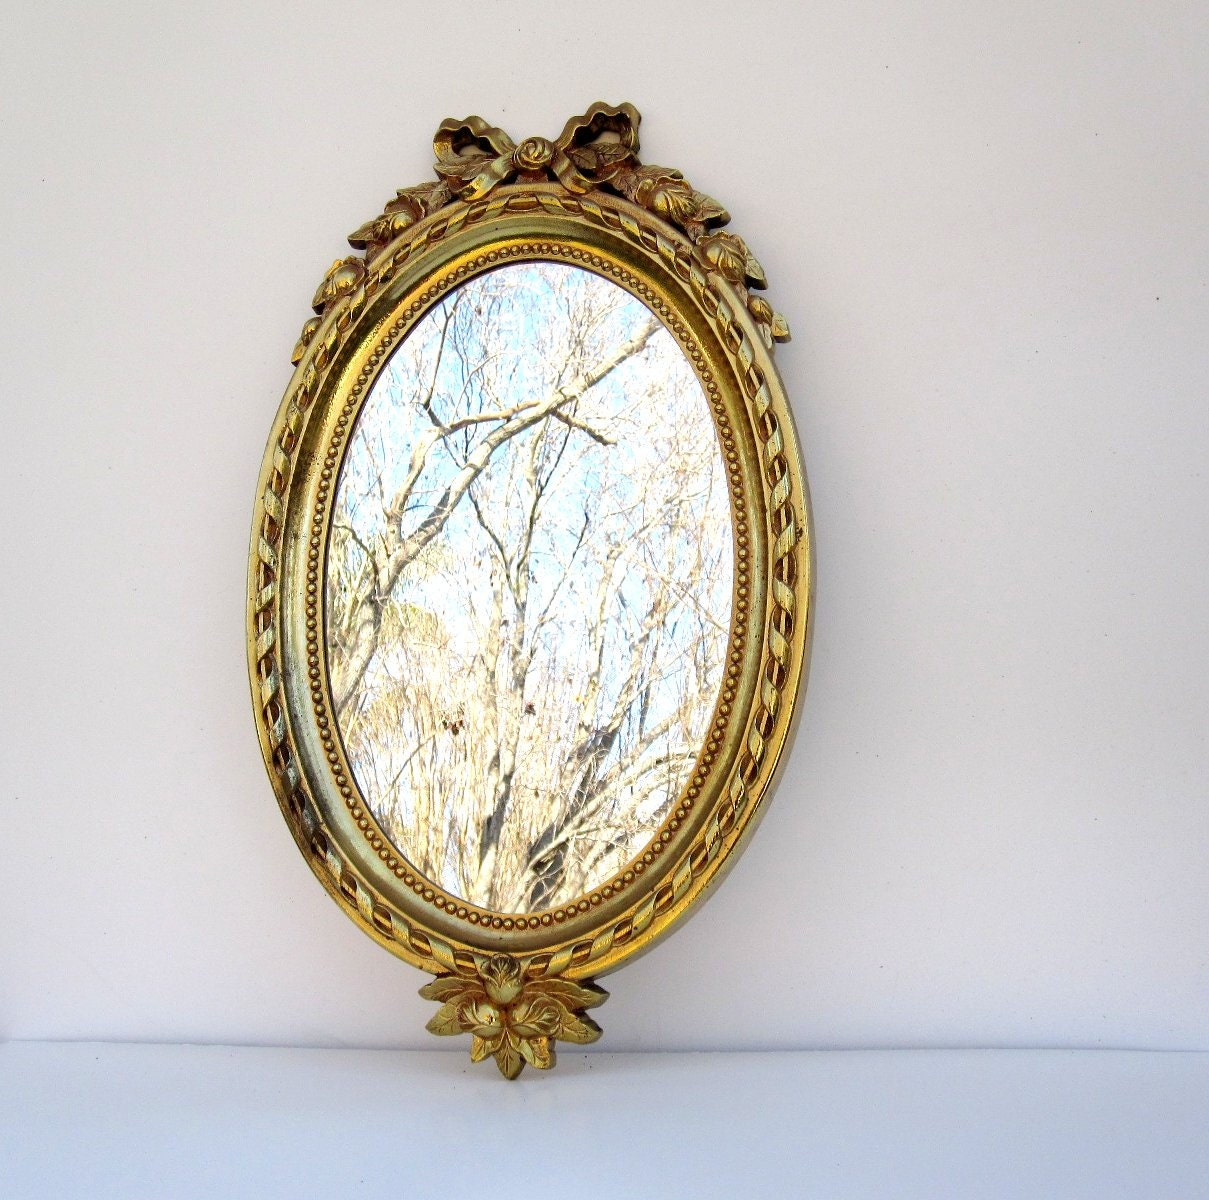 Vintage Large Wall Mirror Ornate Oval Mirror Gold